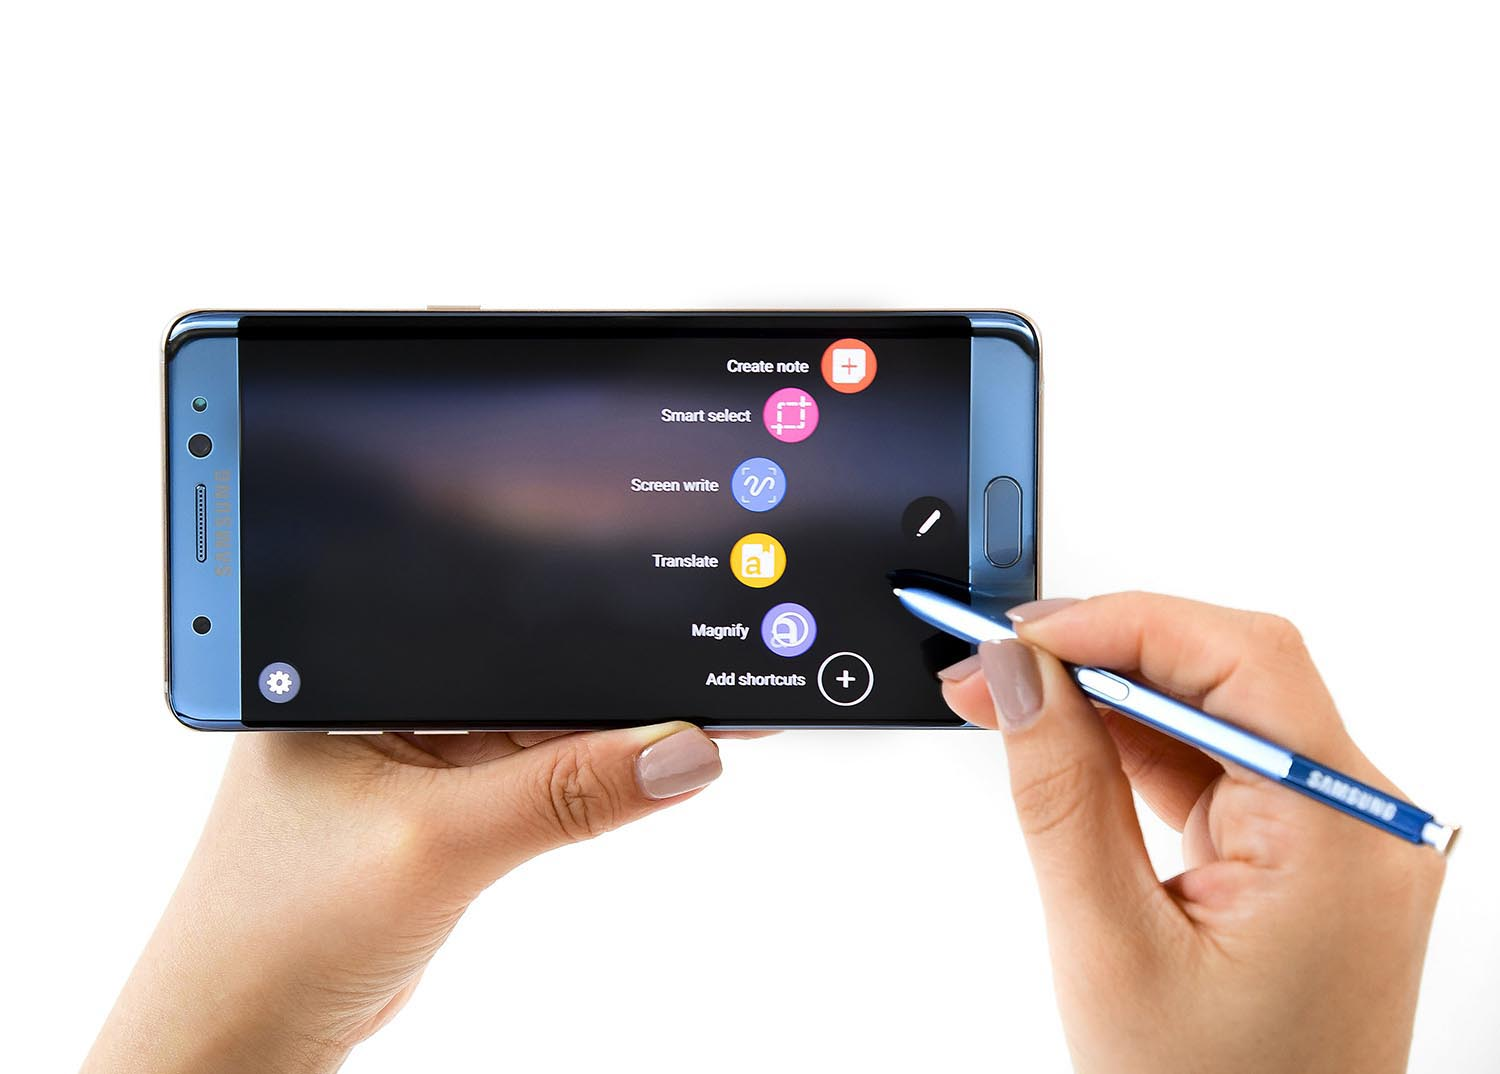 Samsung Has Halted Galaxy Note 7 Sales Worldwide – Users ...